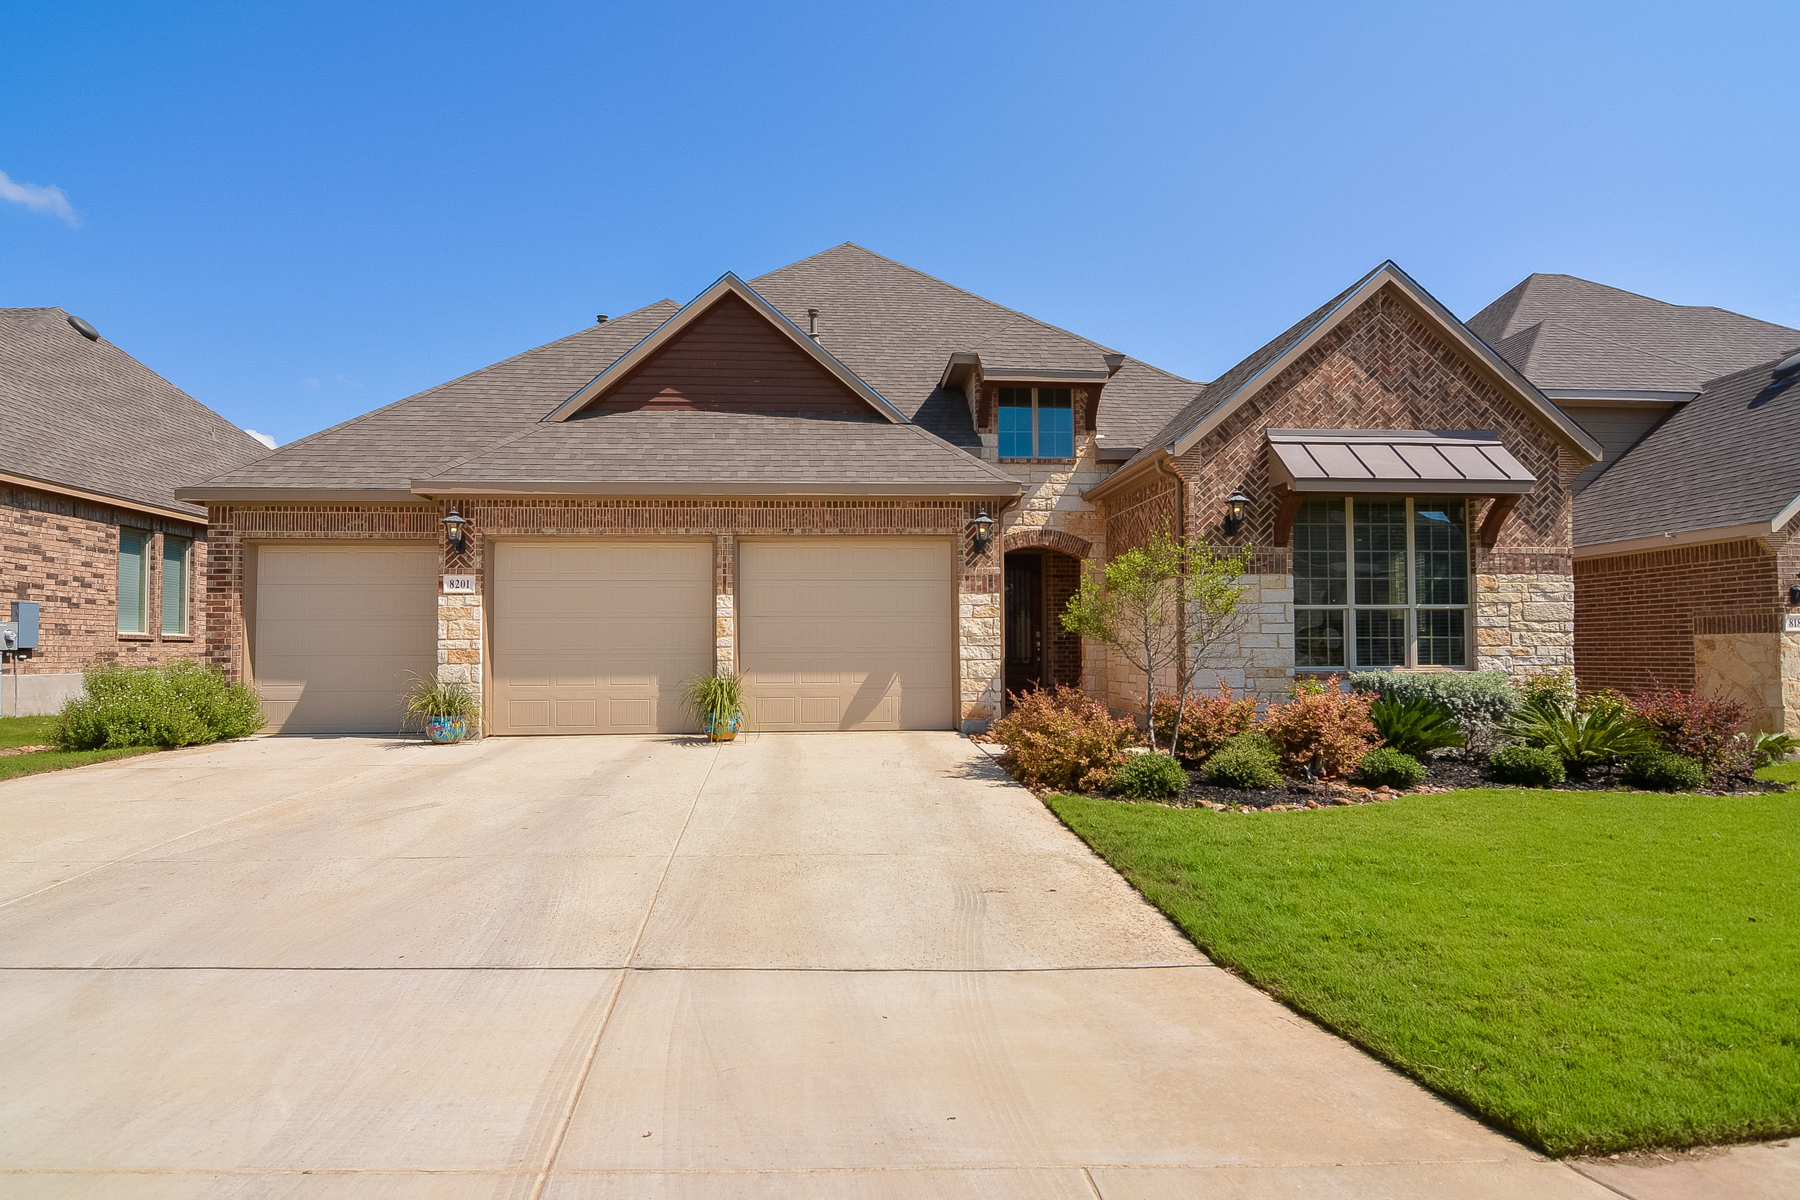 Single Family Home for Sale at Breathtaking Home in Two Creeks 8201 Two Winds San Antonio, Texas 78255 United States